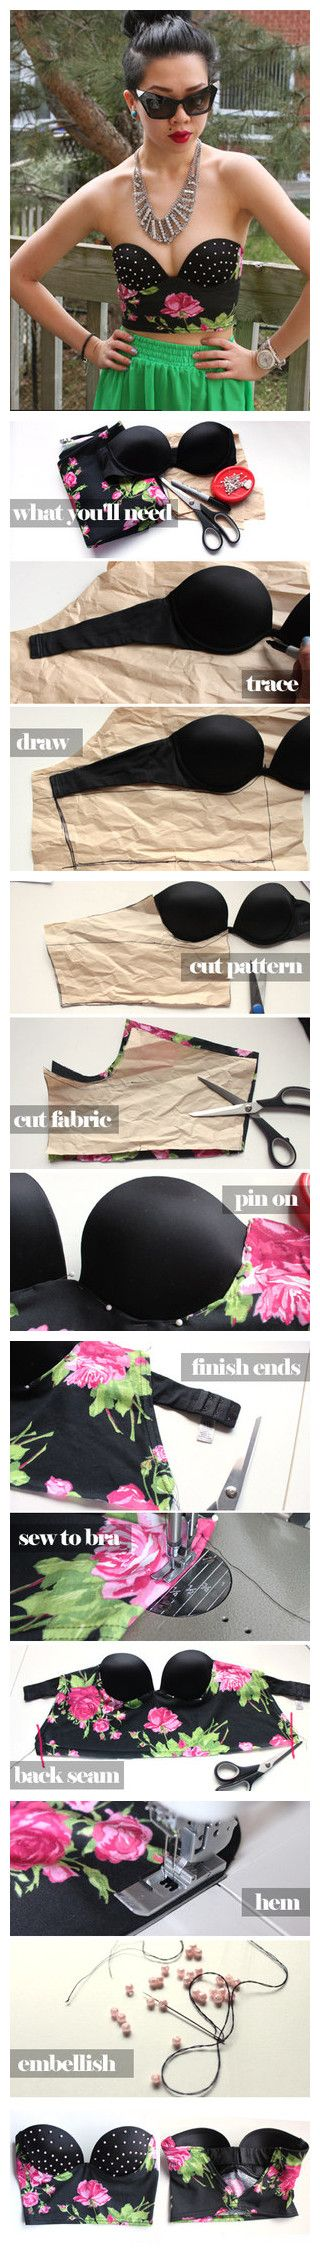 DIY top with built-in bra